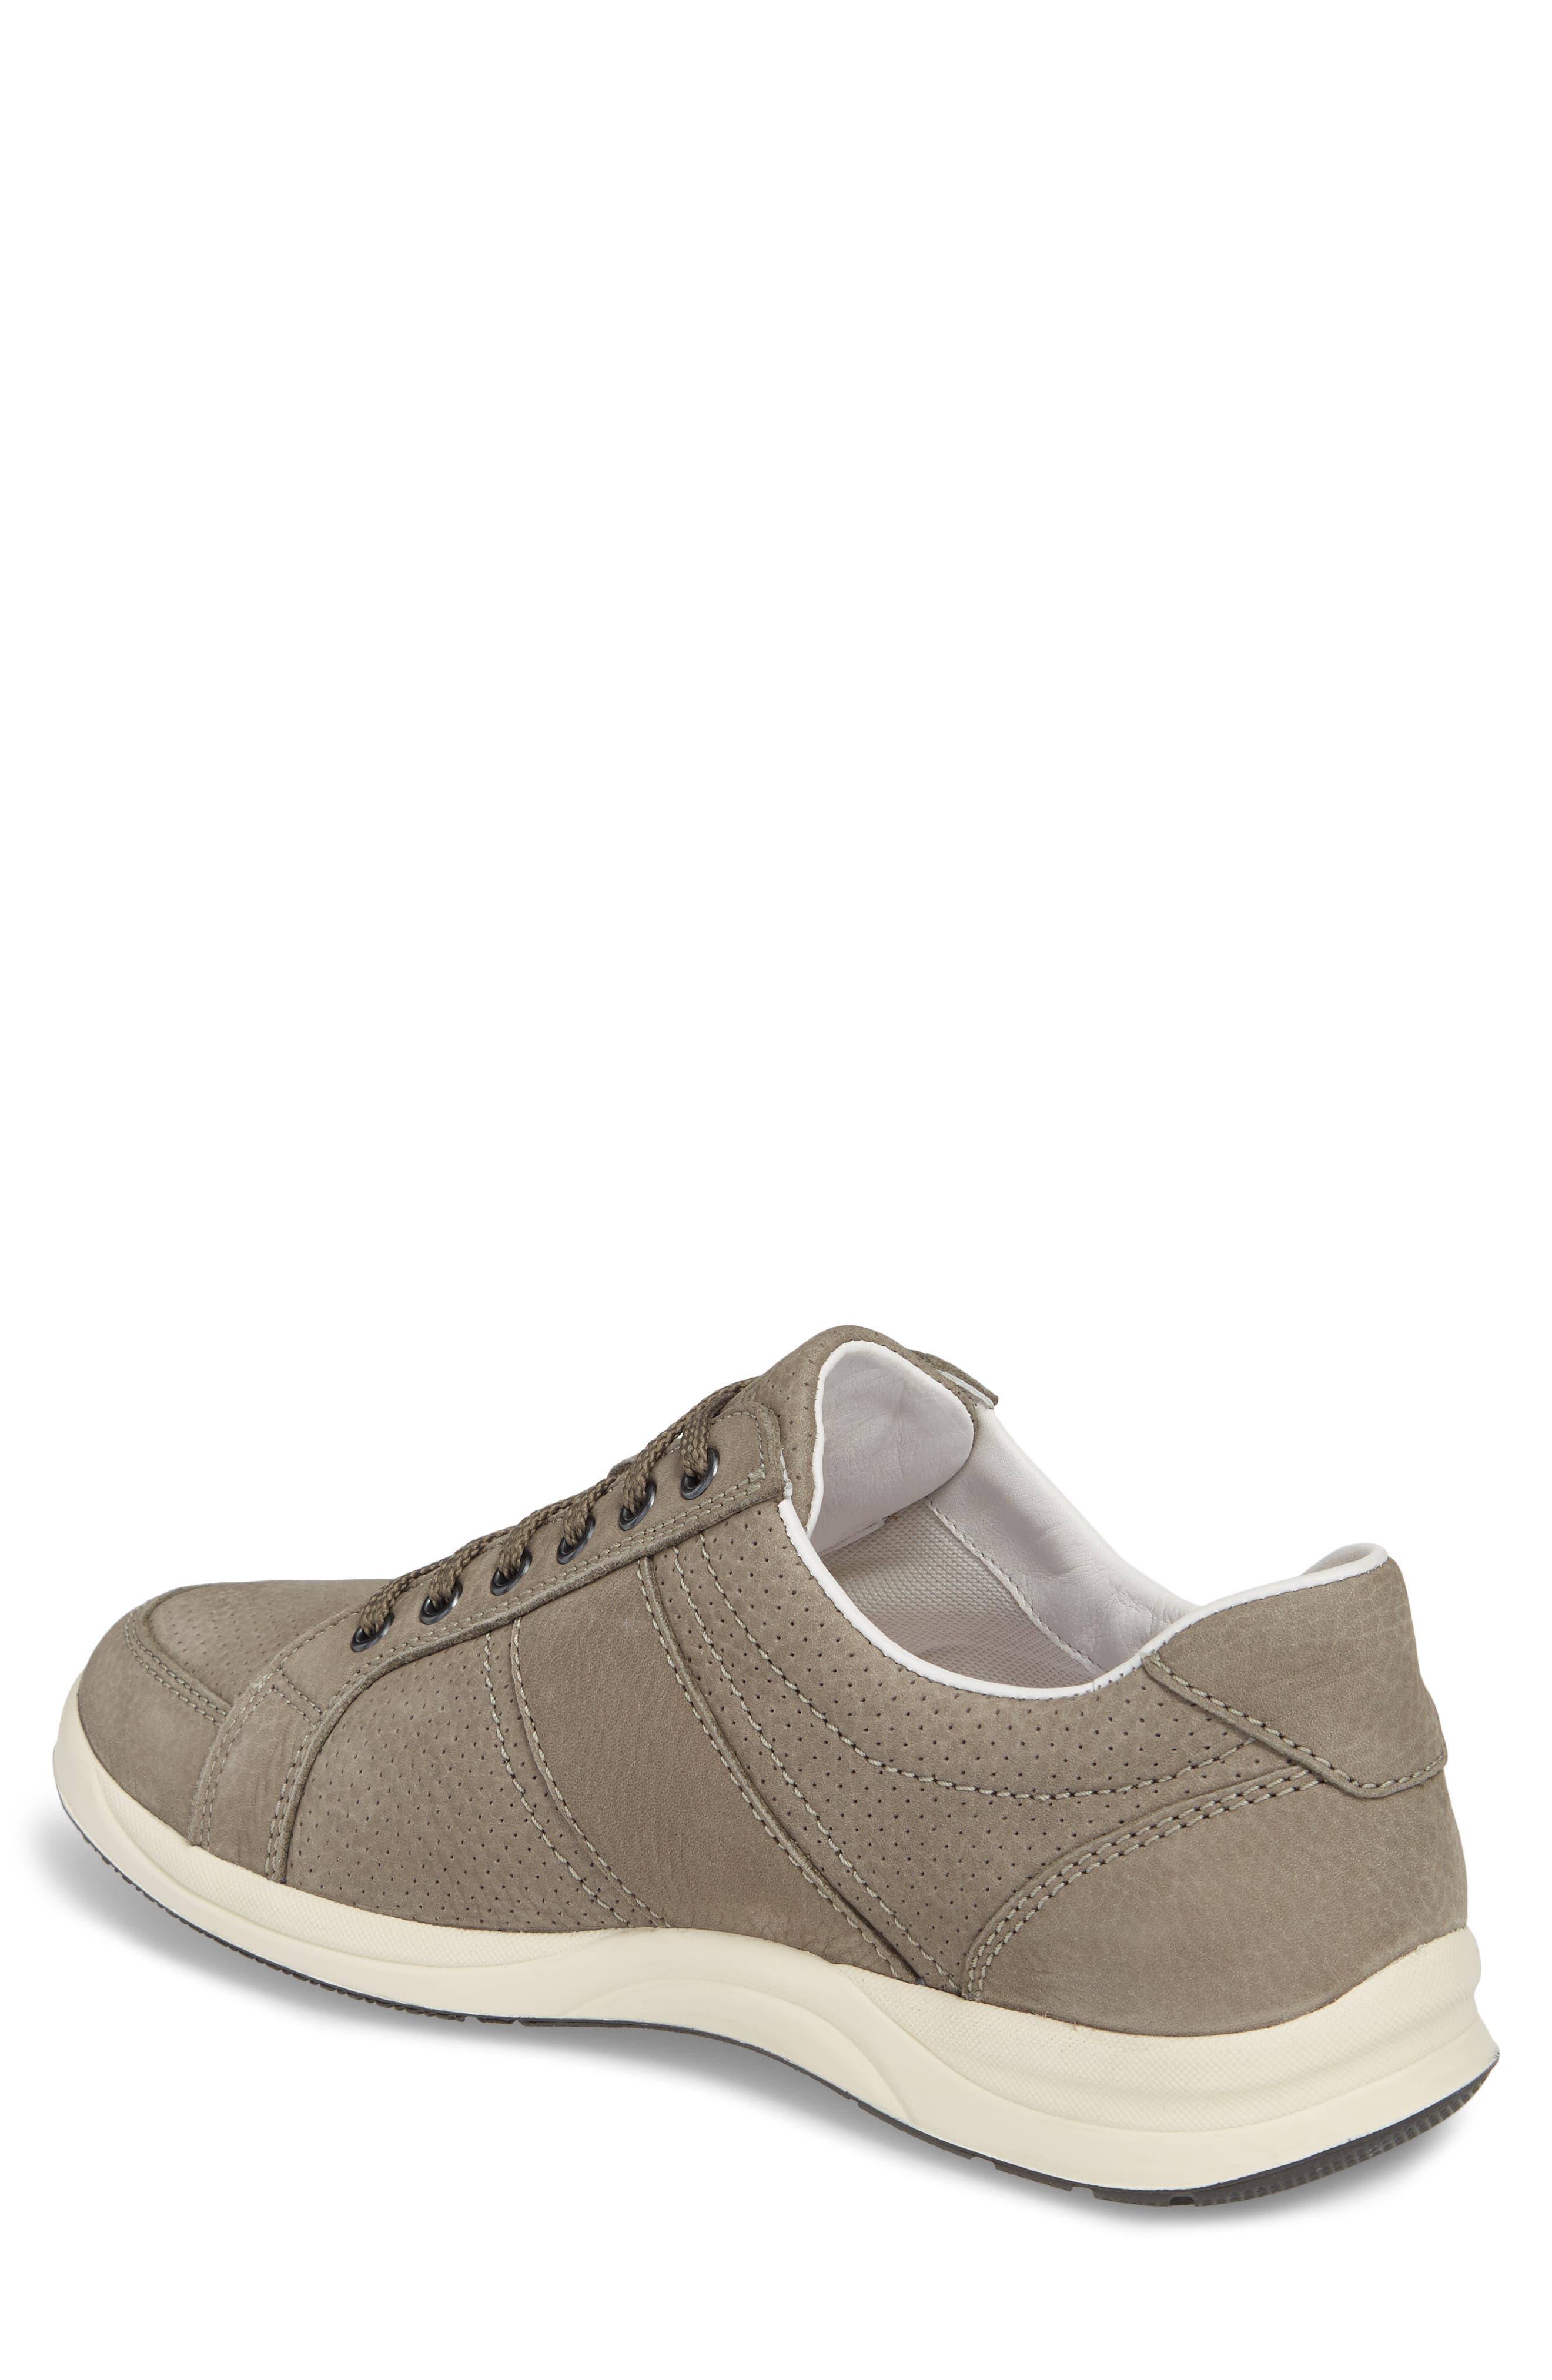 'Hero' Perforated Sneaker,                             Alternate thumbnail 2, color,                             GREY LEATHER